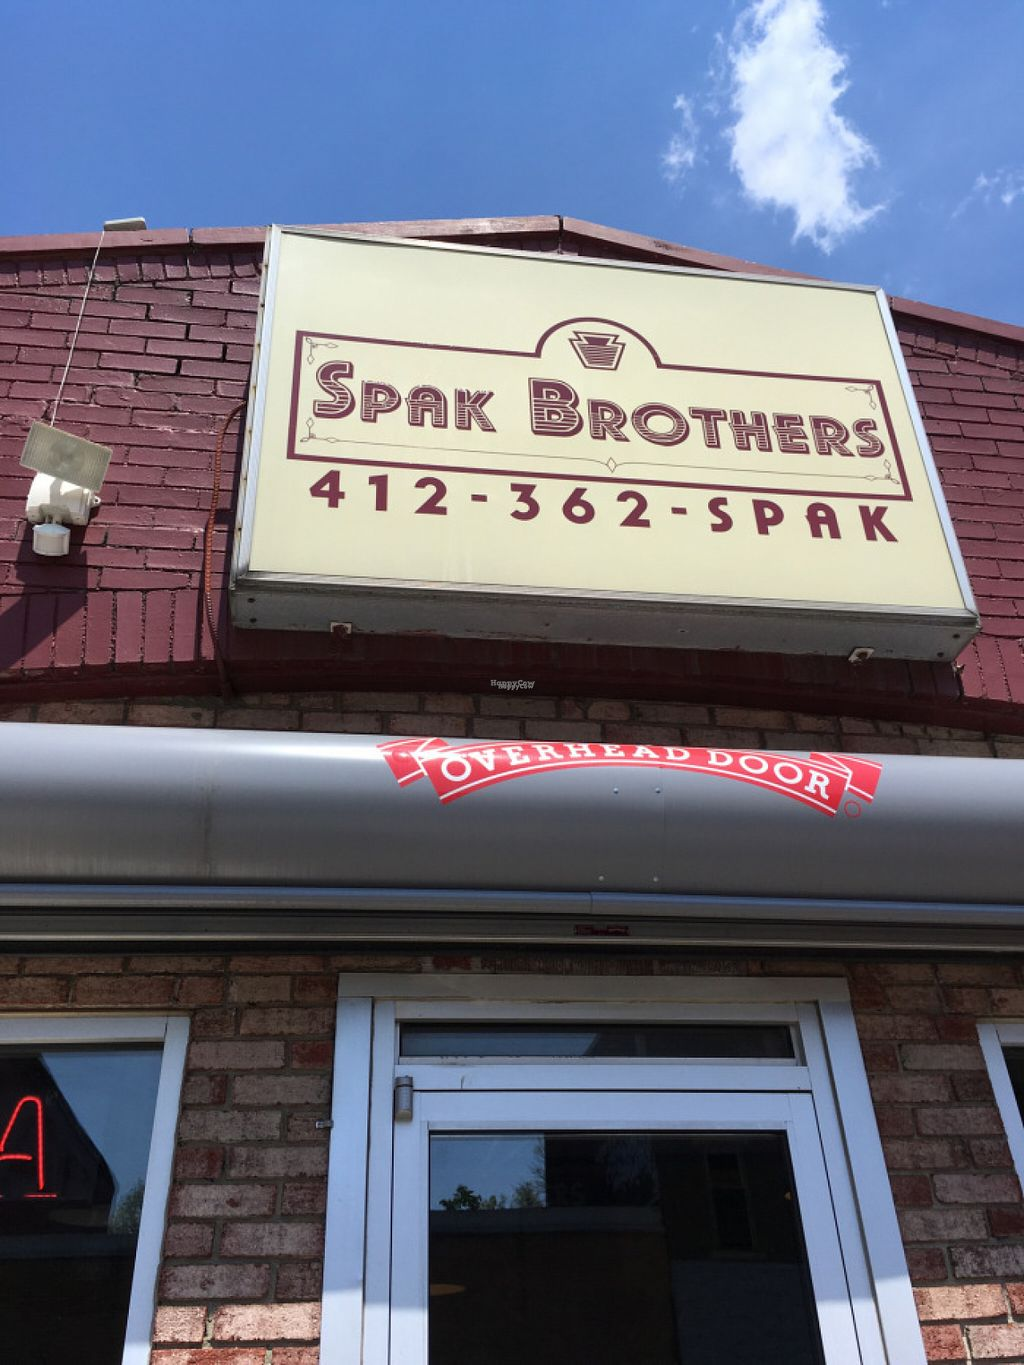 """Photo of Spak Brothers  by <a href=""""/members/profile/ecoRDN"""">ecoRDN</a> <br/>Spak Brothers, Pittsburgh, PA -  Photo by ecoRDN ecoRDN.com <br/> October 31, 2016  - <a href='/contact/abuse/image/18941/185586'>Report</a>"""